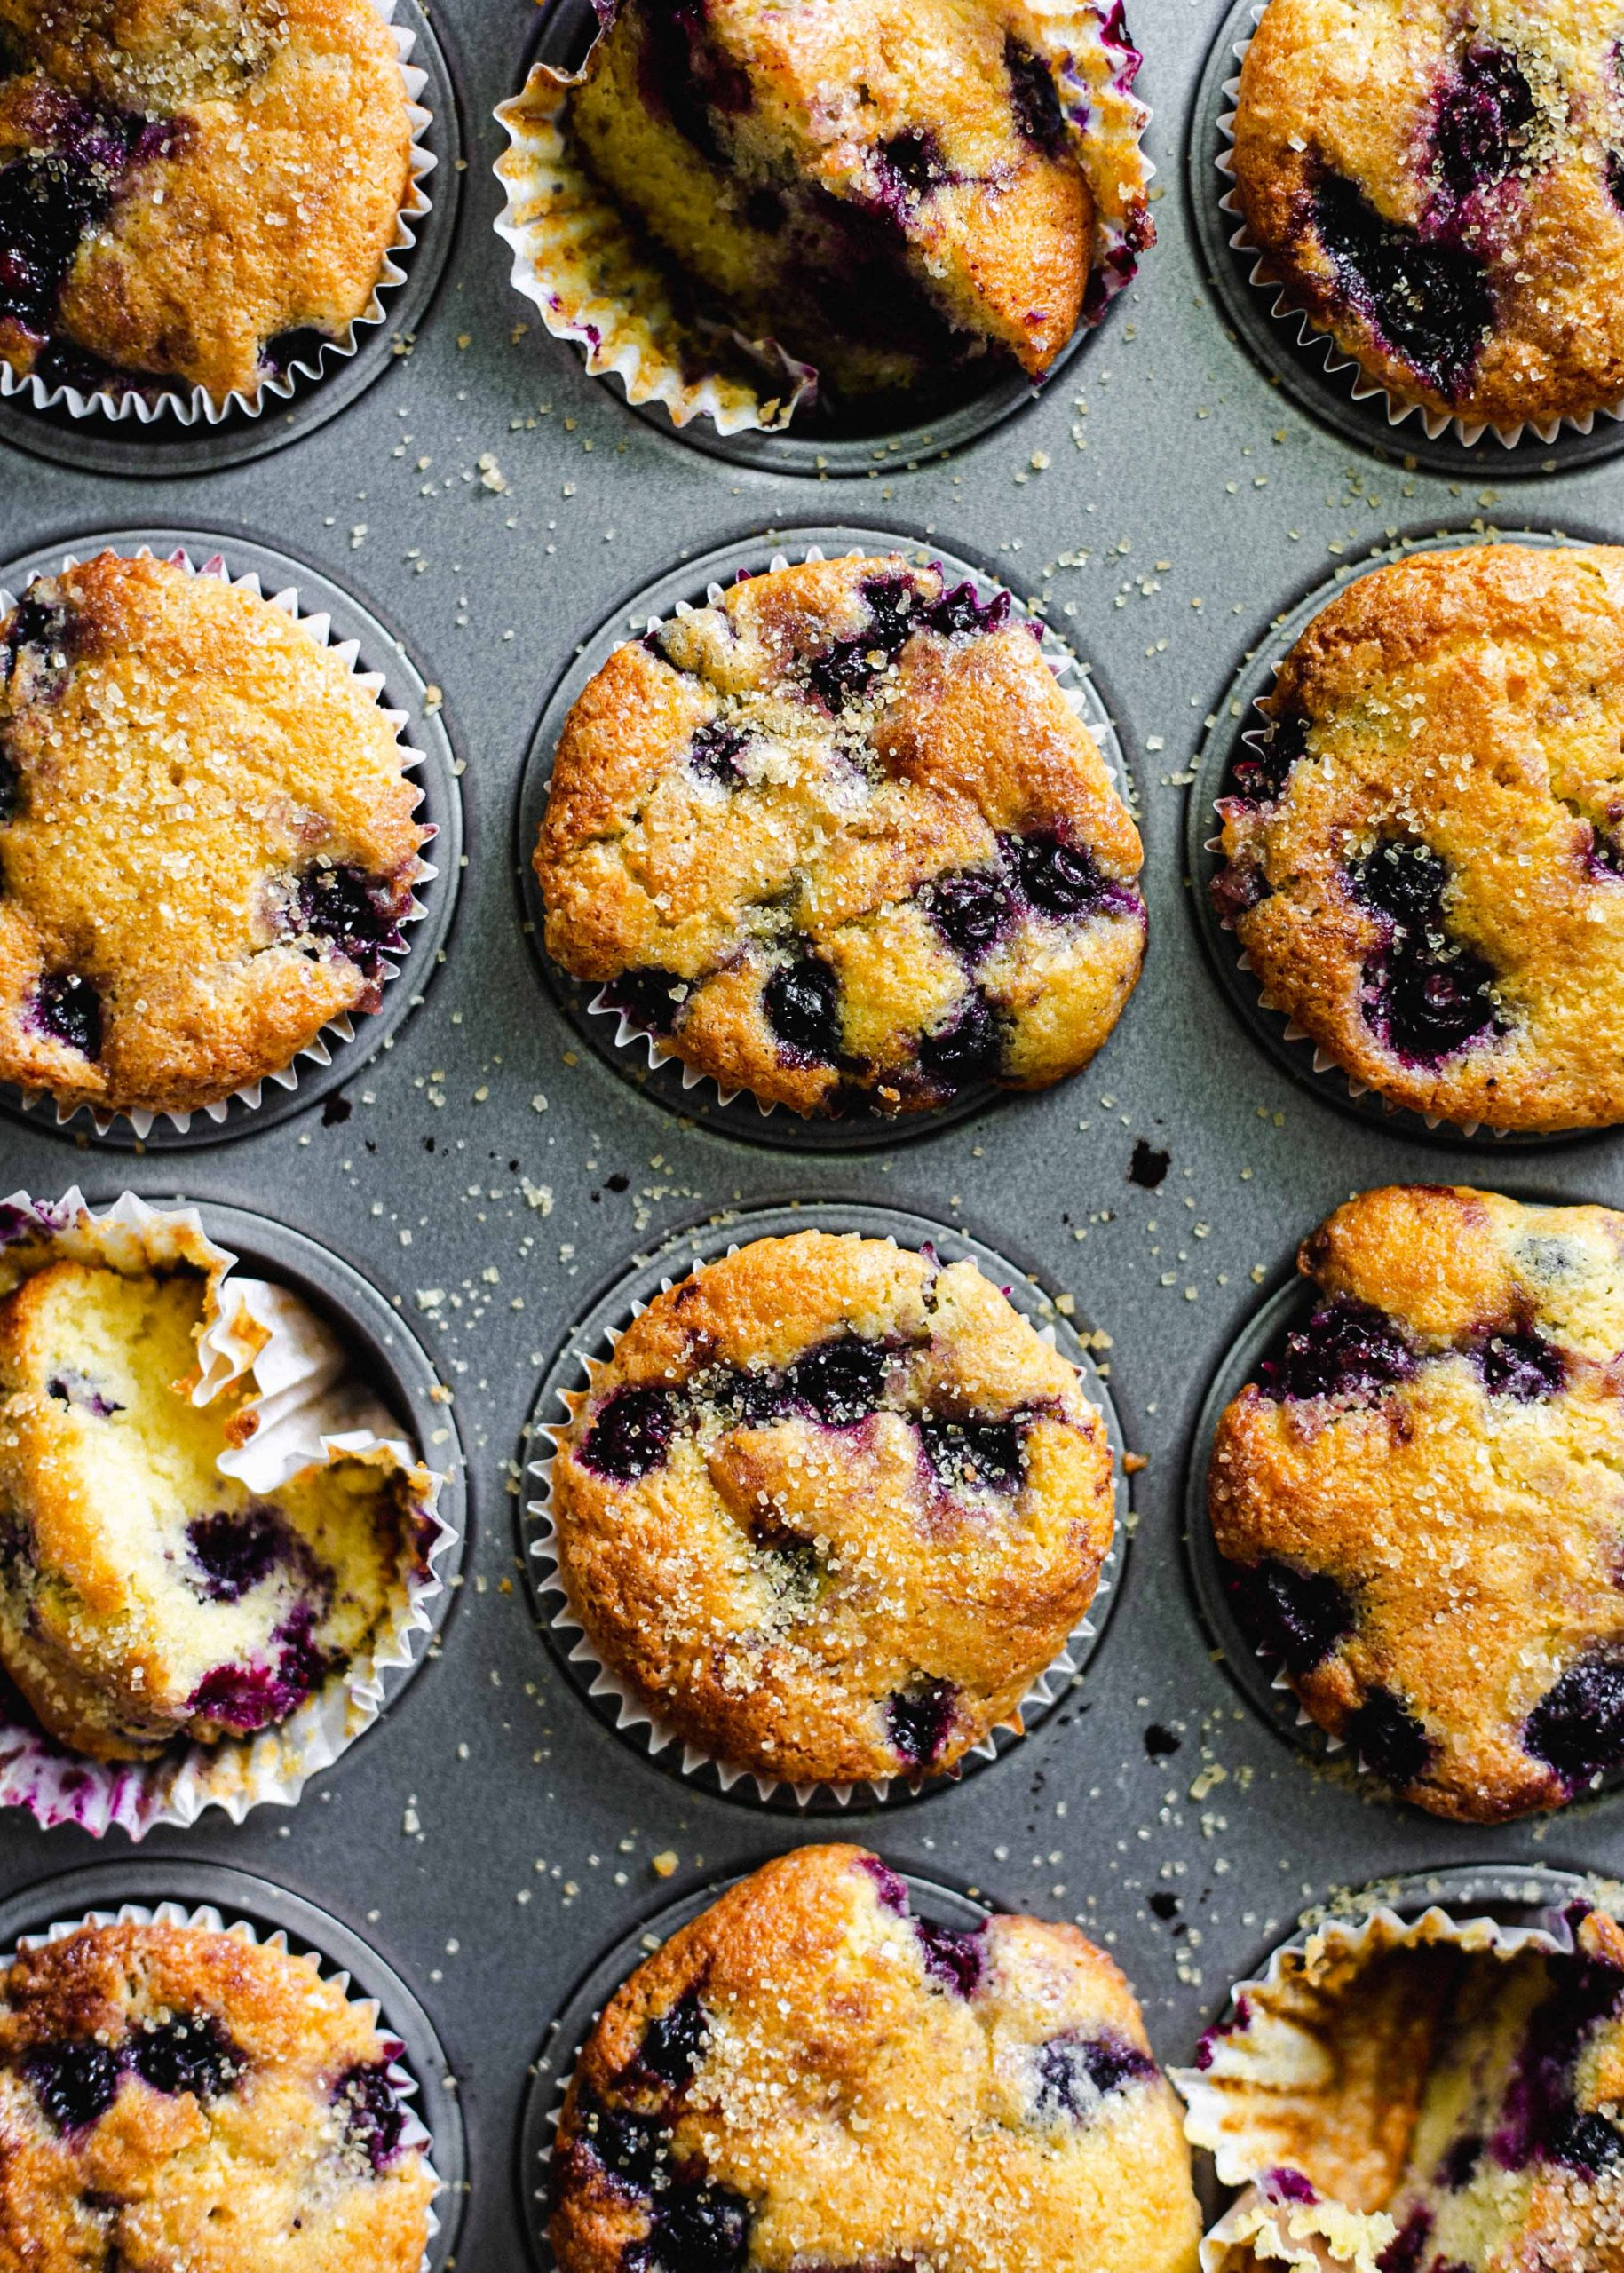 Gluten free and low FODMAP blueberry and corn muffins